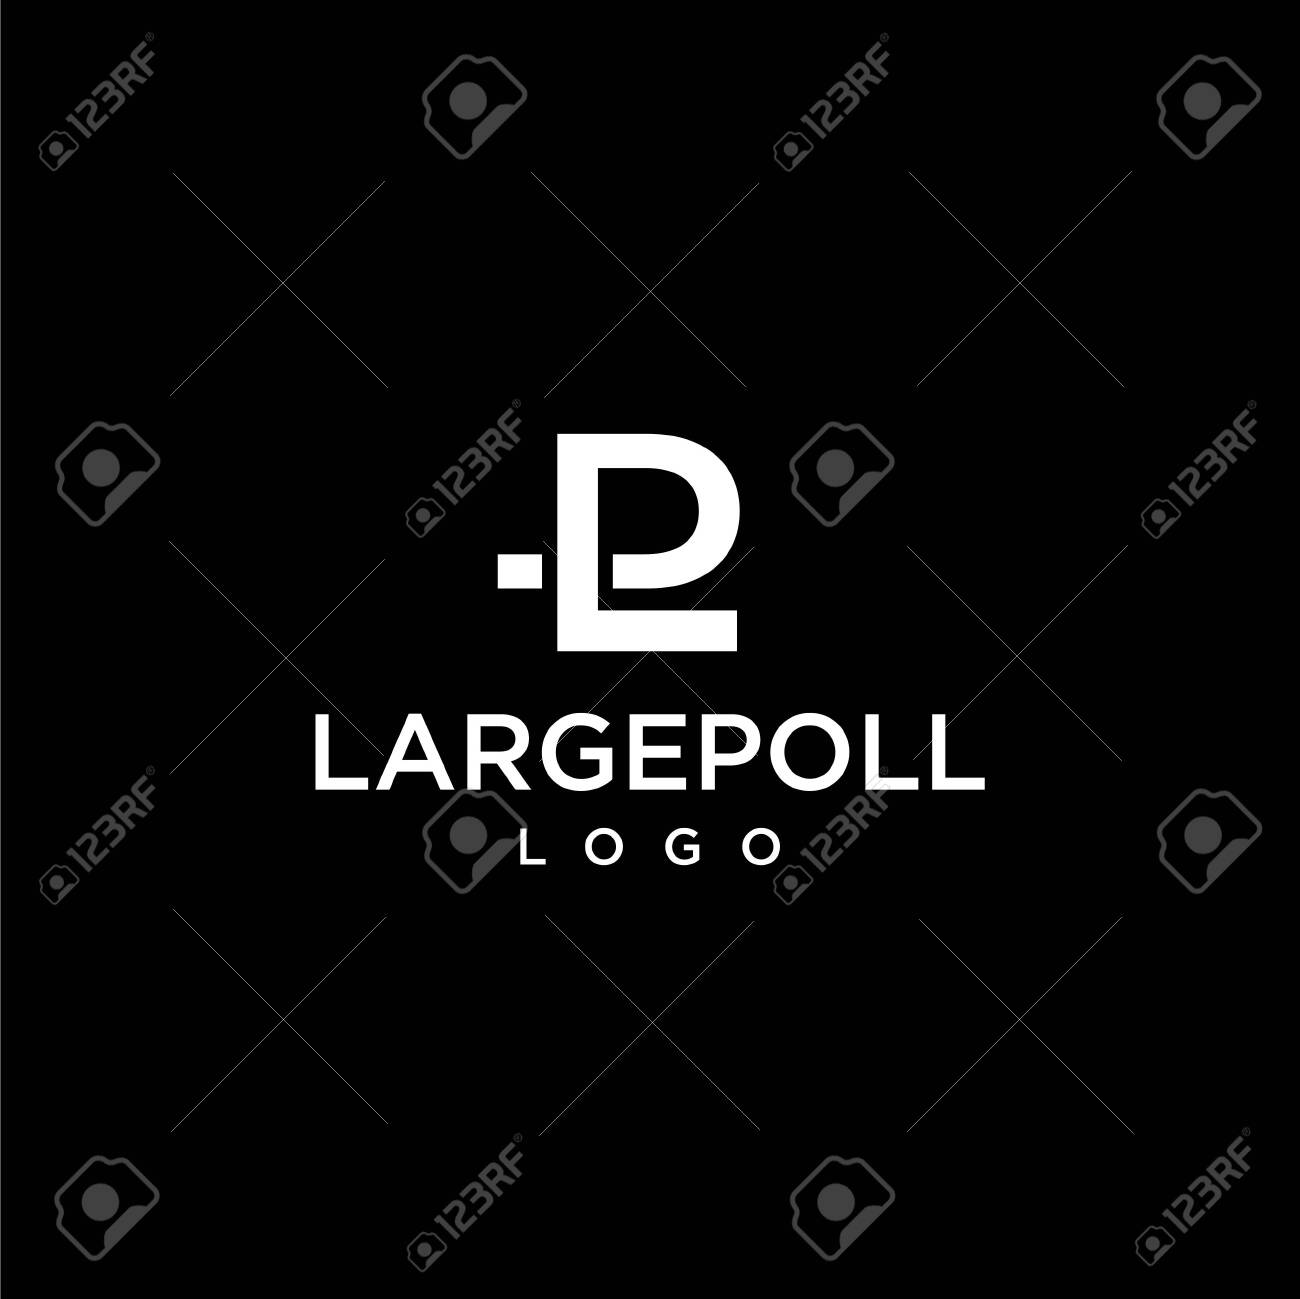 Simple and modern logo design of letter P and L with dark background - - Vector. - 142849698